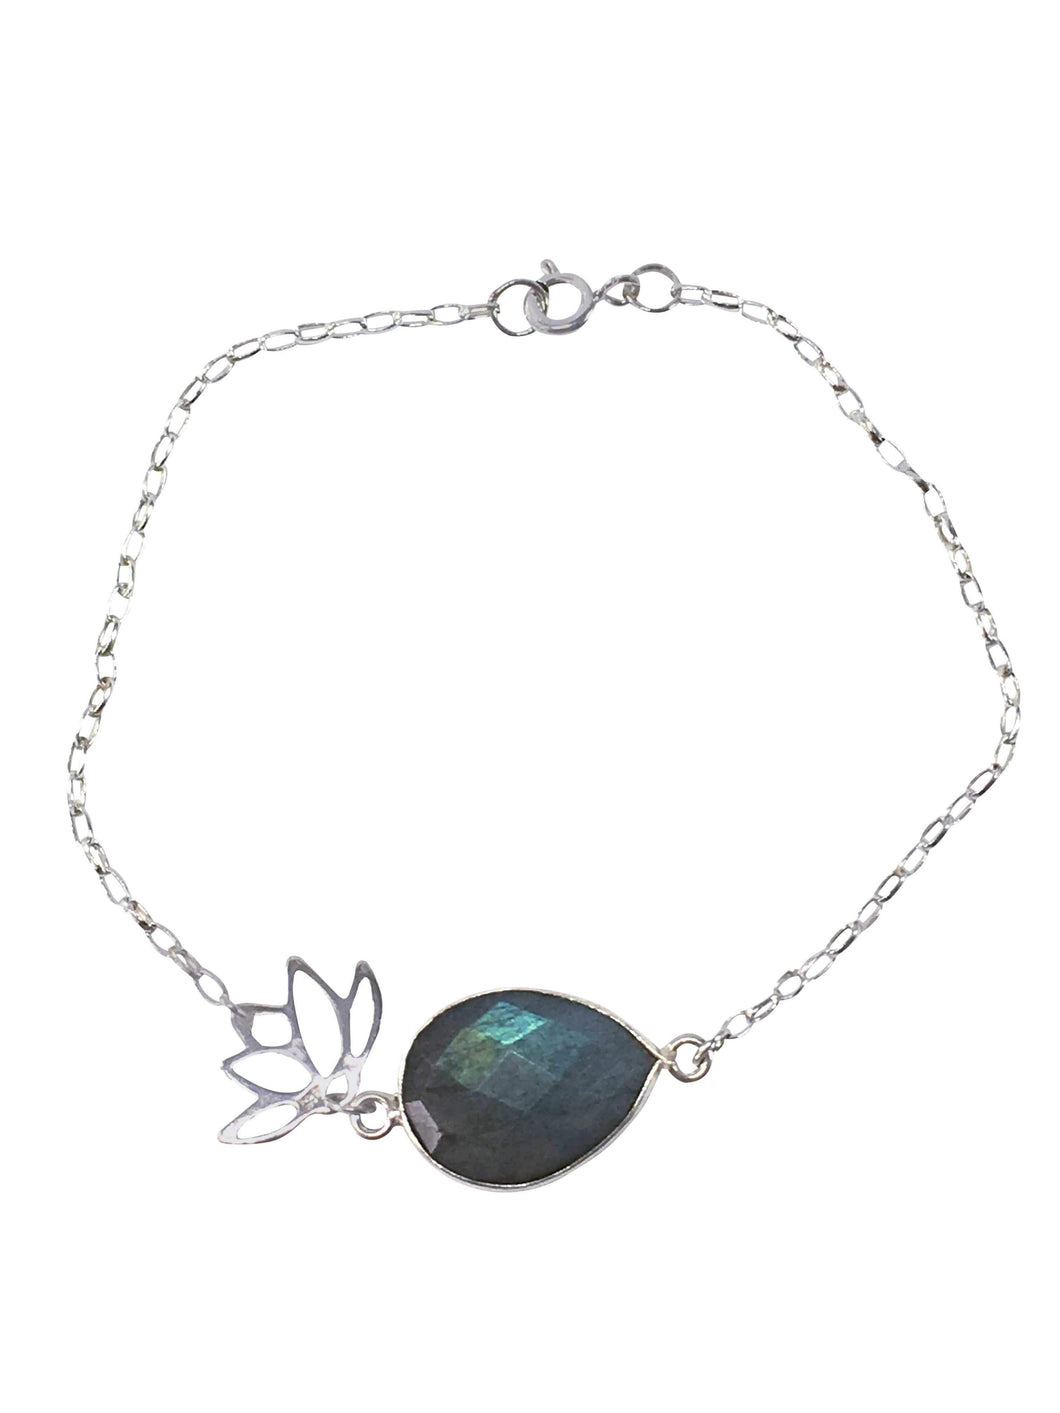 Handmade Sterling Silver And Labradorite Gemstone Bracelet